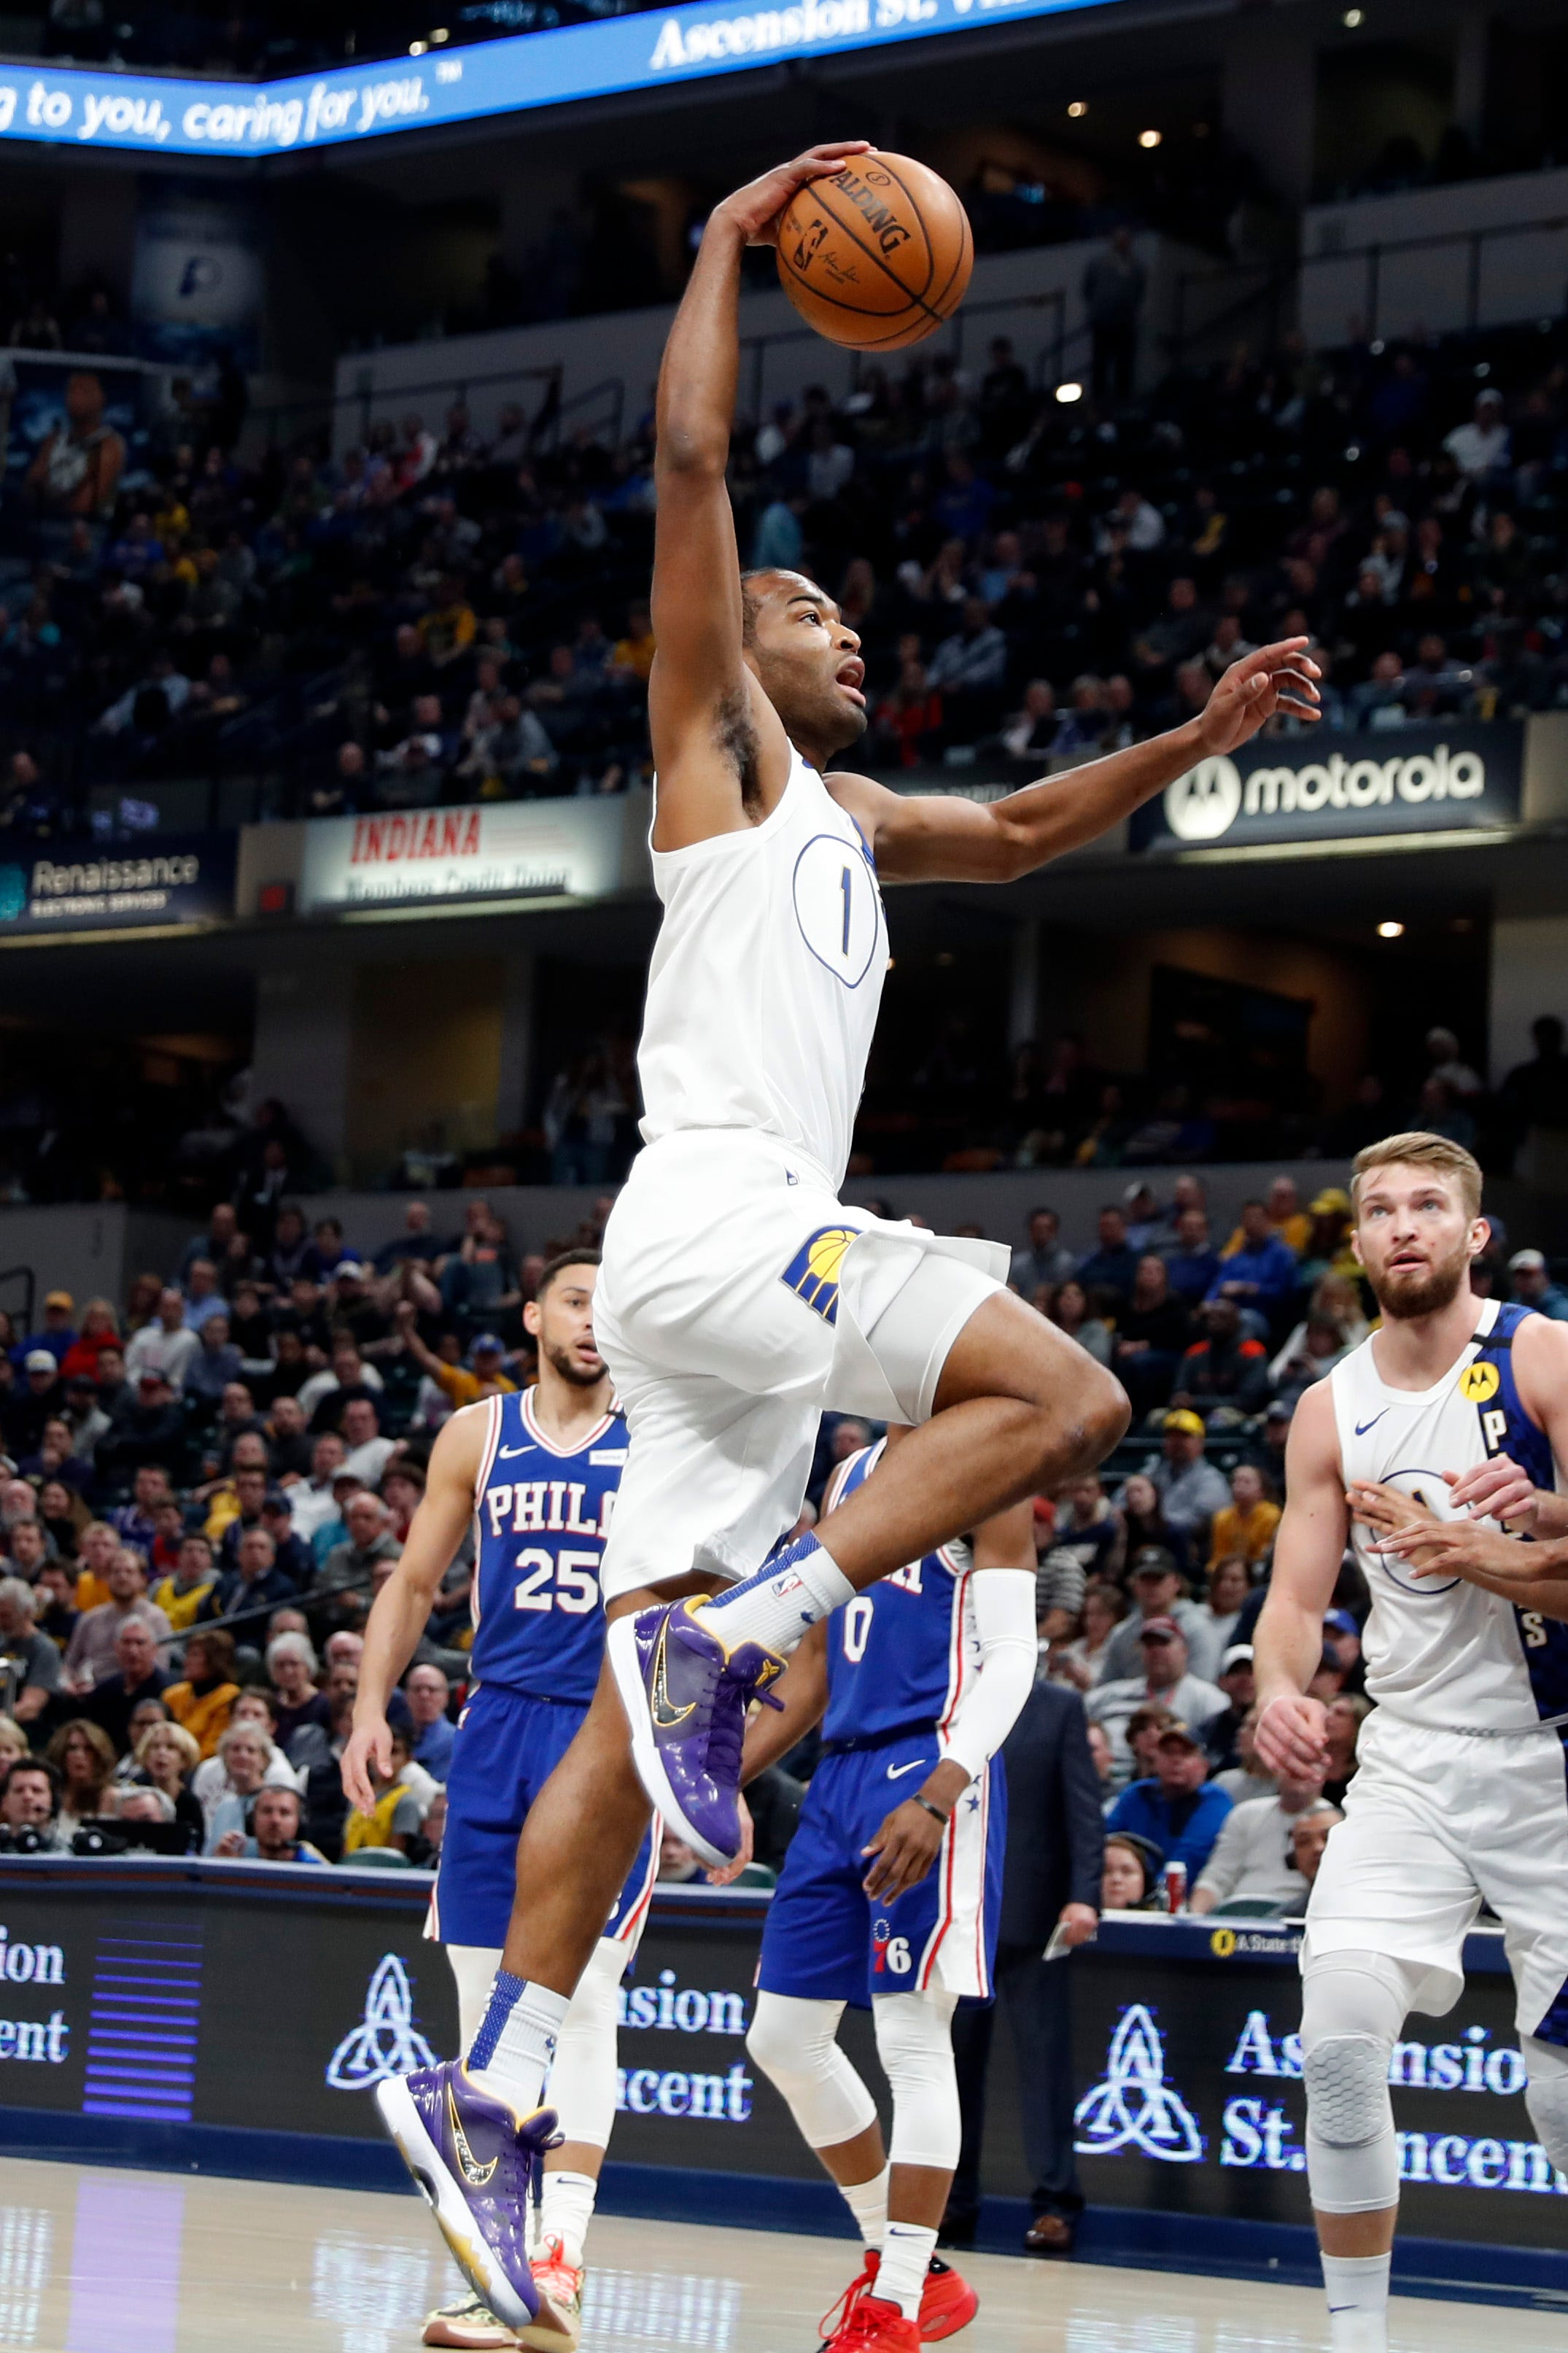 Jan 13, 2020; Indianapolis, Indiana, USA; Indiana Pacers forward T.J. Warren (1) dunks against the Philadelphia 76ers during the first quarter at Bankers Life Fieldhouse.